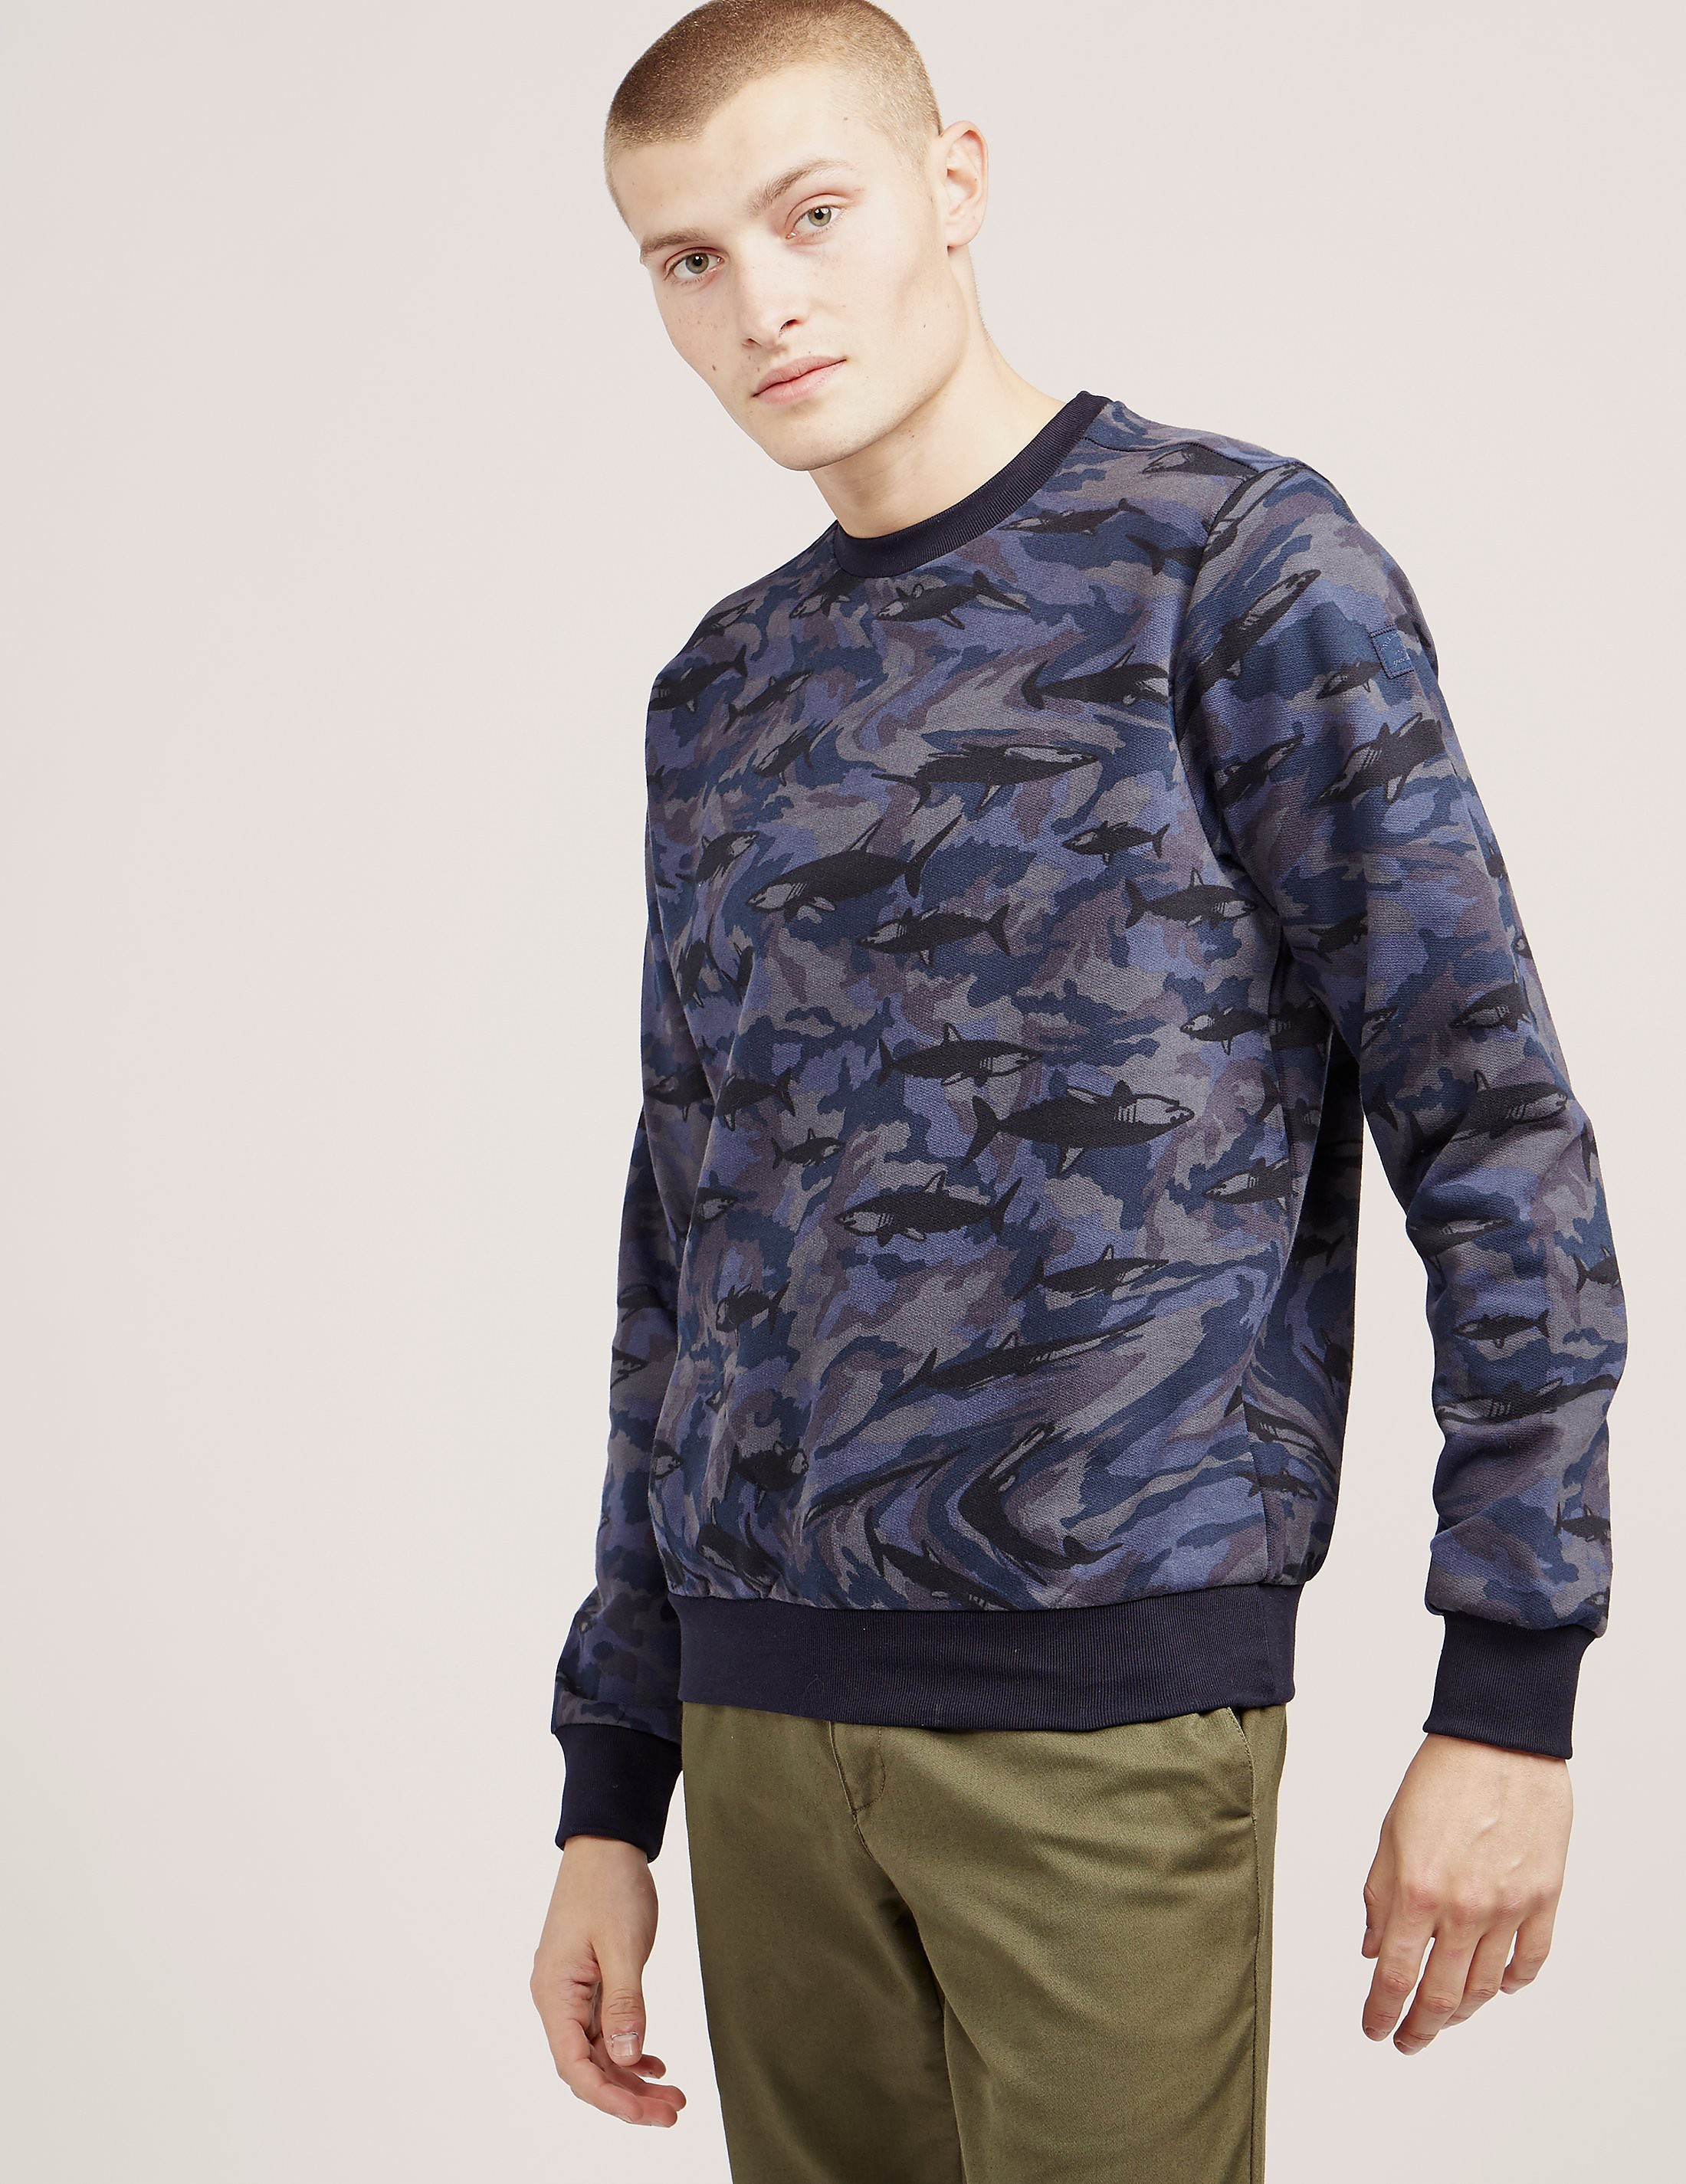 Paul and Shark Camoflauge Shark Sweatshirt